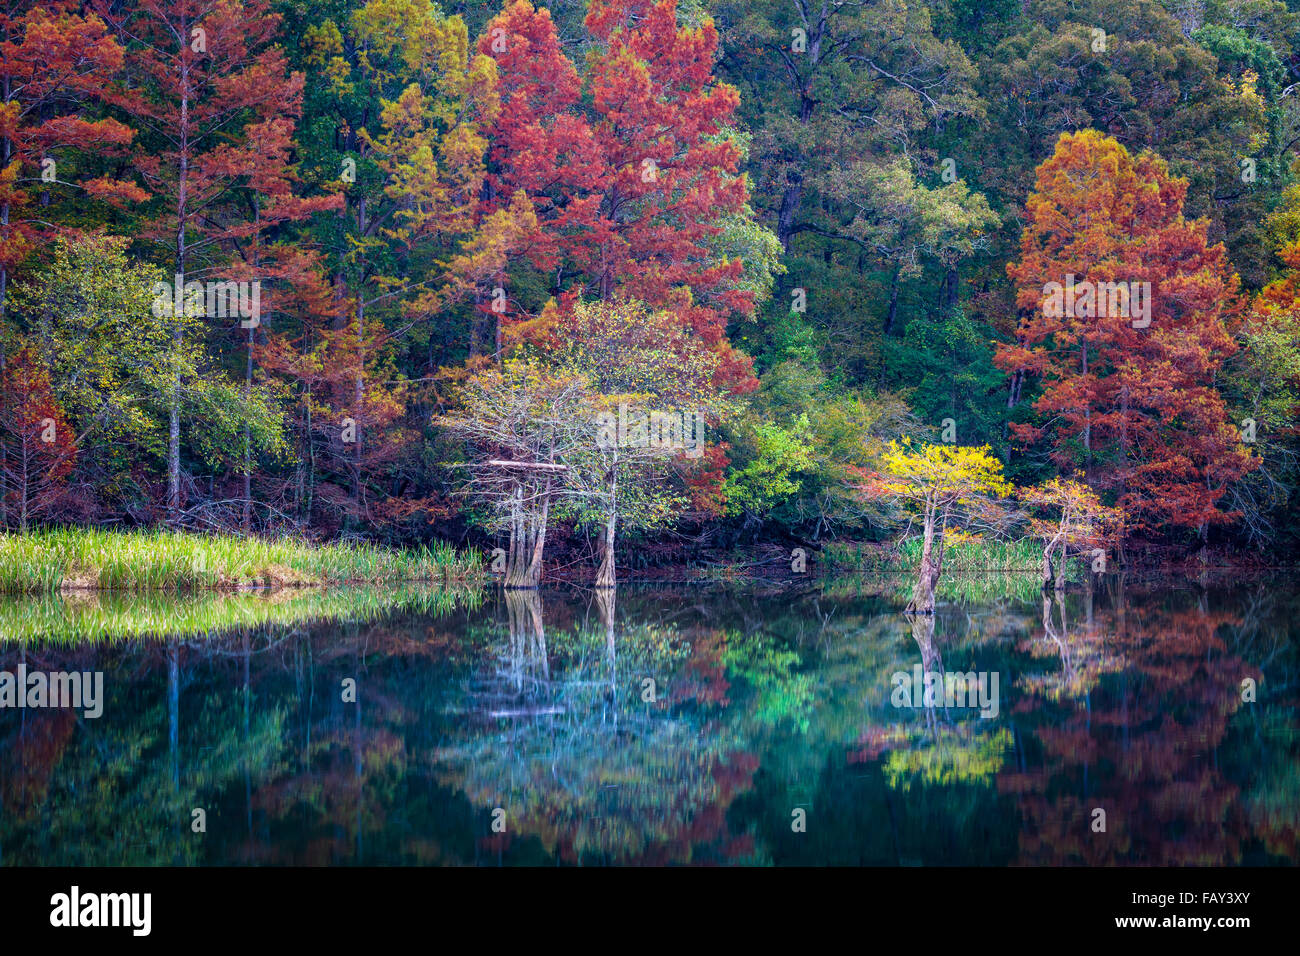 Beavers Bend State Park is a 1,300 acres state park located near Broken Bow, Oklahoma - Stock Image